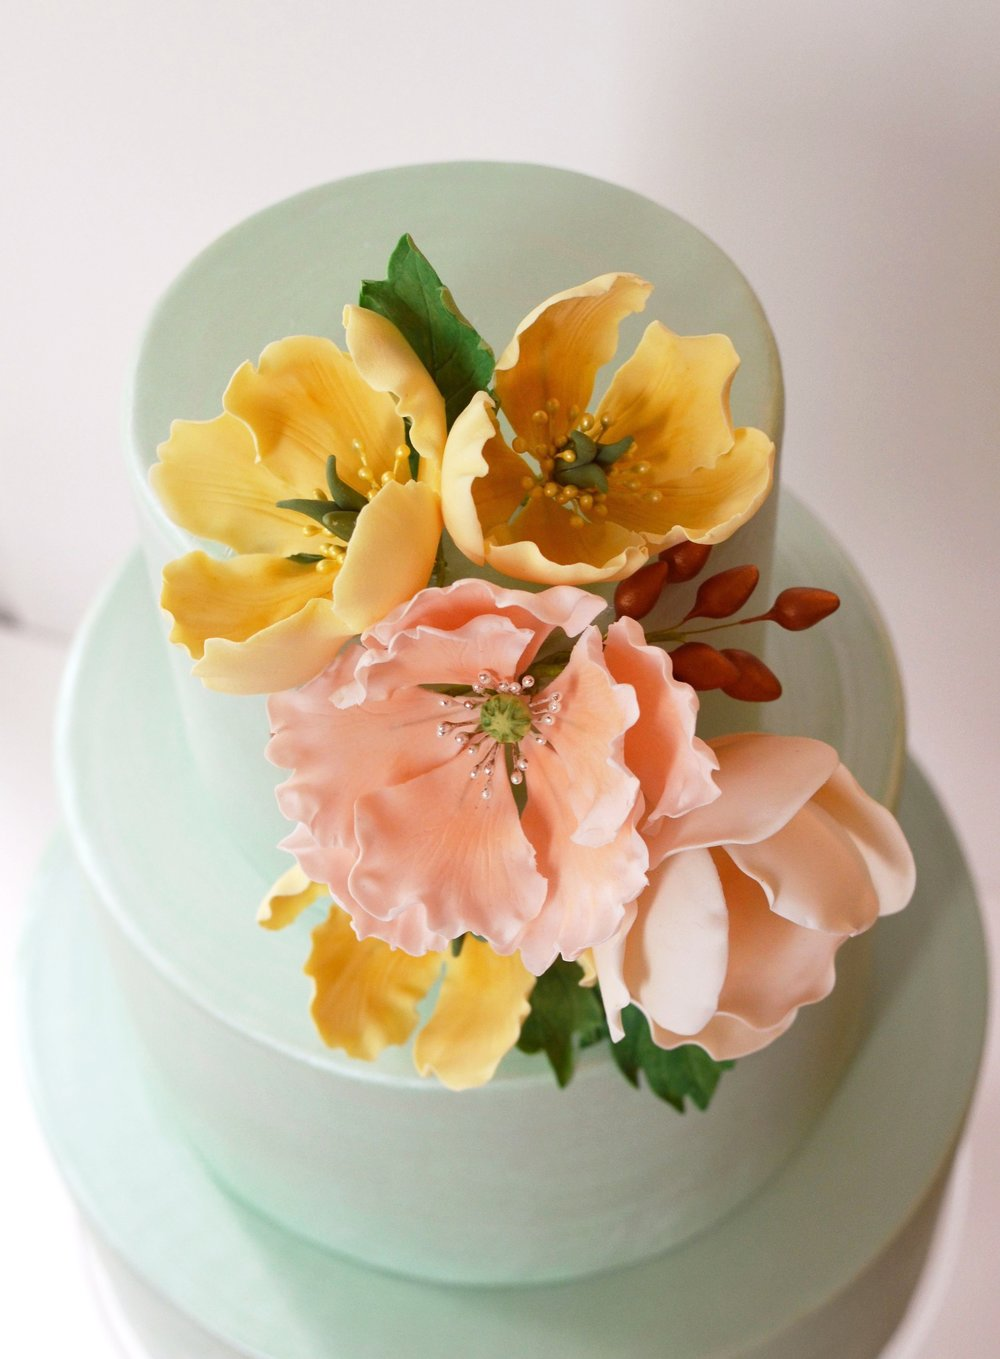 Soft pastel sugar blooms on a pearlized mint-green cake. Image © Carla Schier.